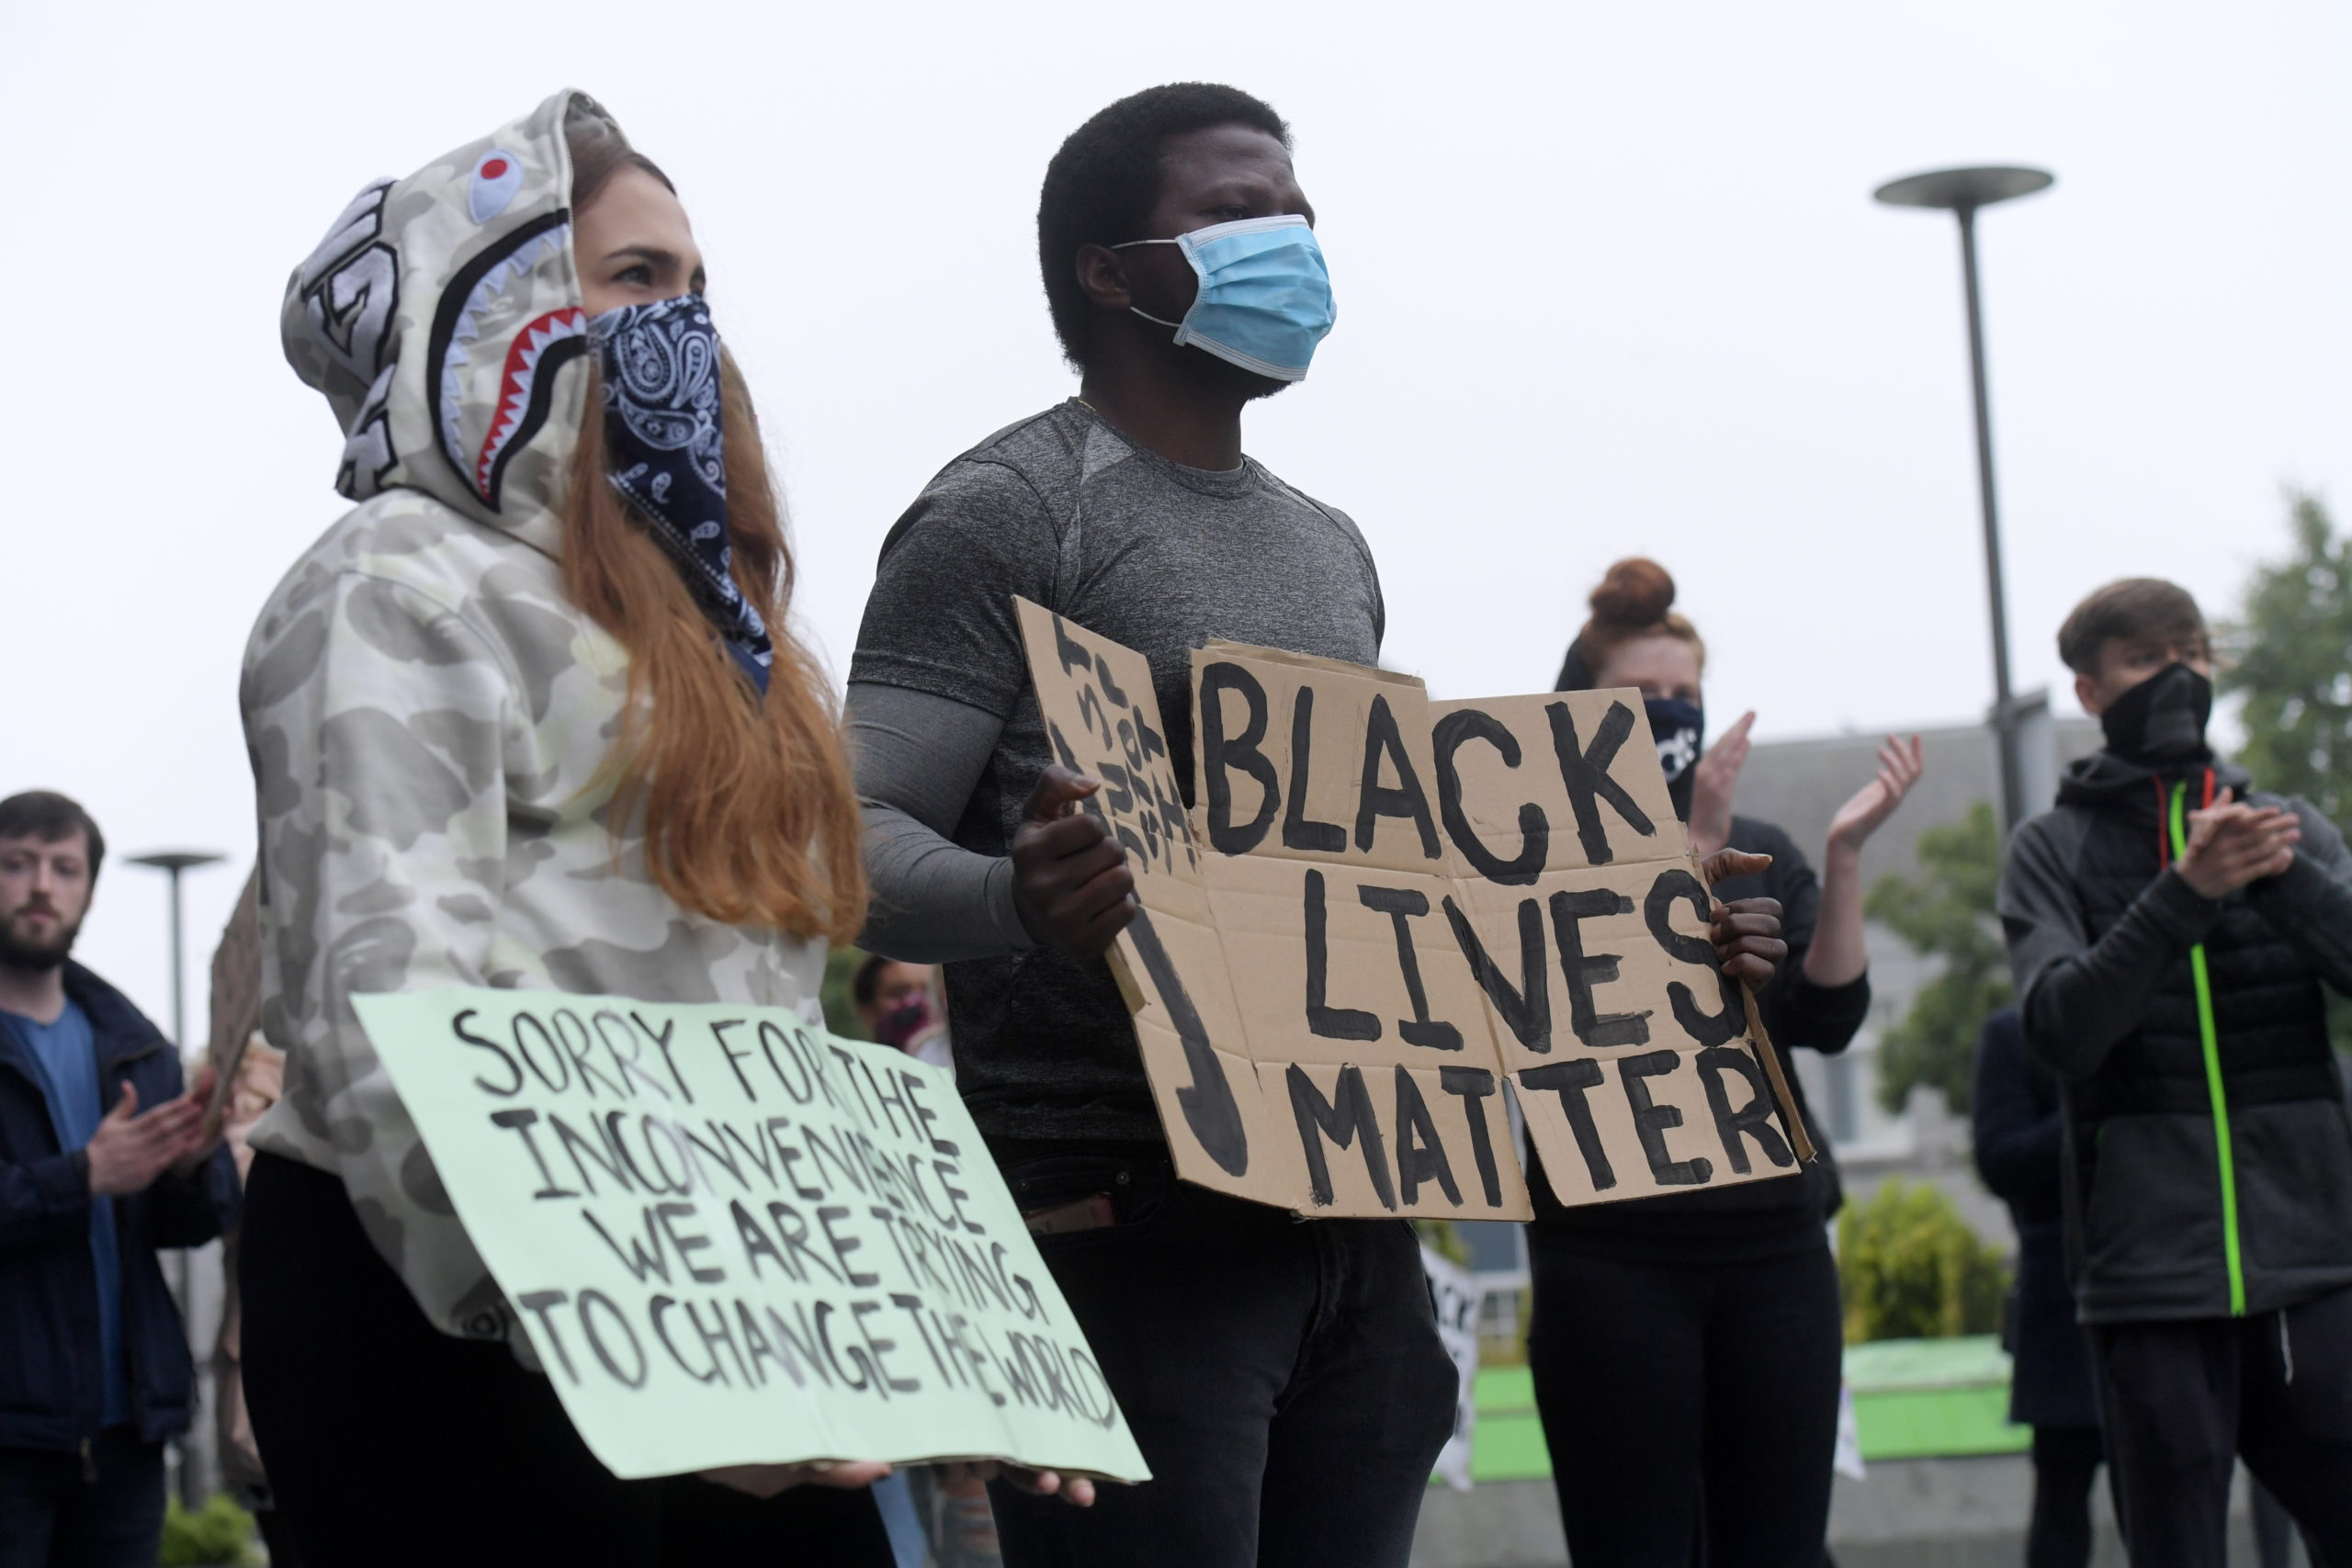 Black Lives Matter protesters.  Photo by Kath Flannery